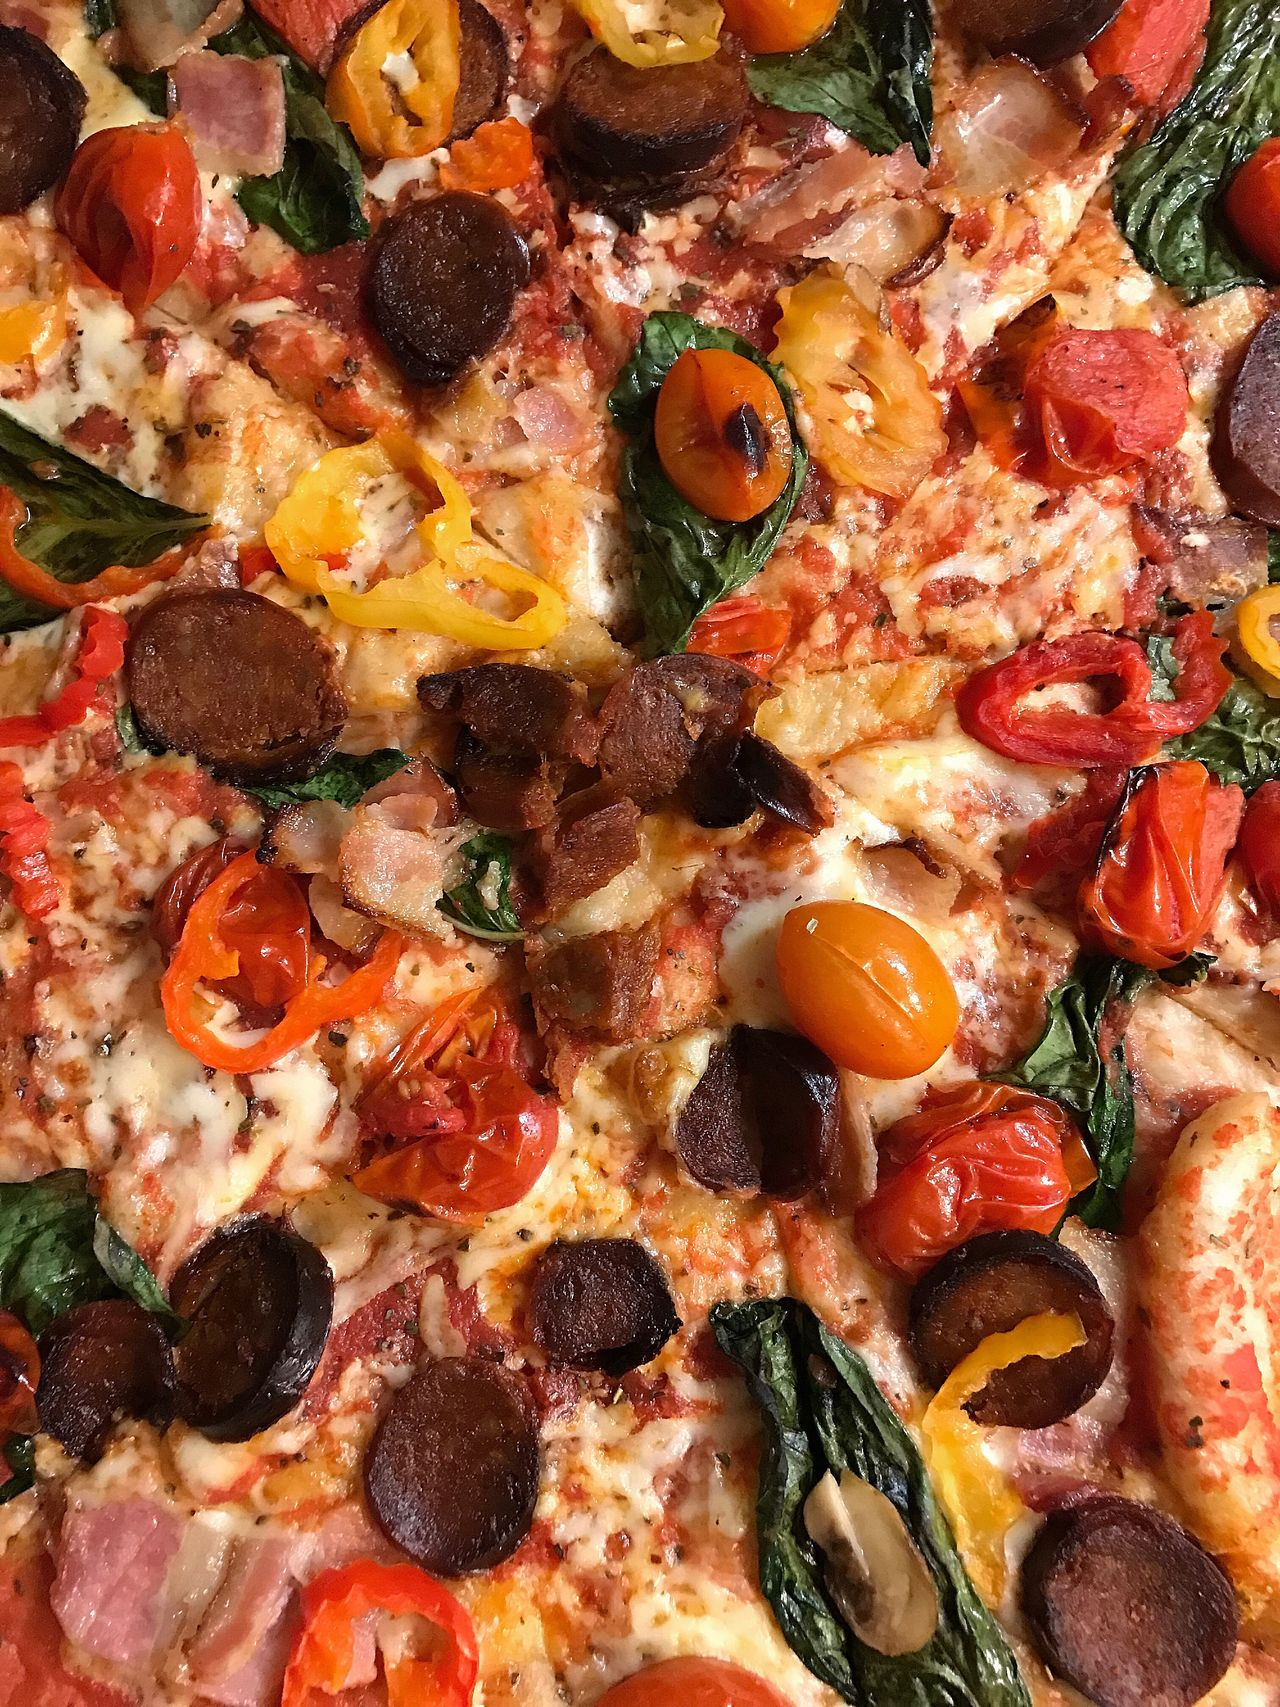 Pizza Pizza Tomato Food And Drink Fast Food Food SLICE Unhealthy Eating Baked Freshness No People Italian Food Close-up Pepperoni Pizza Ready-to-eat Indoors  Day